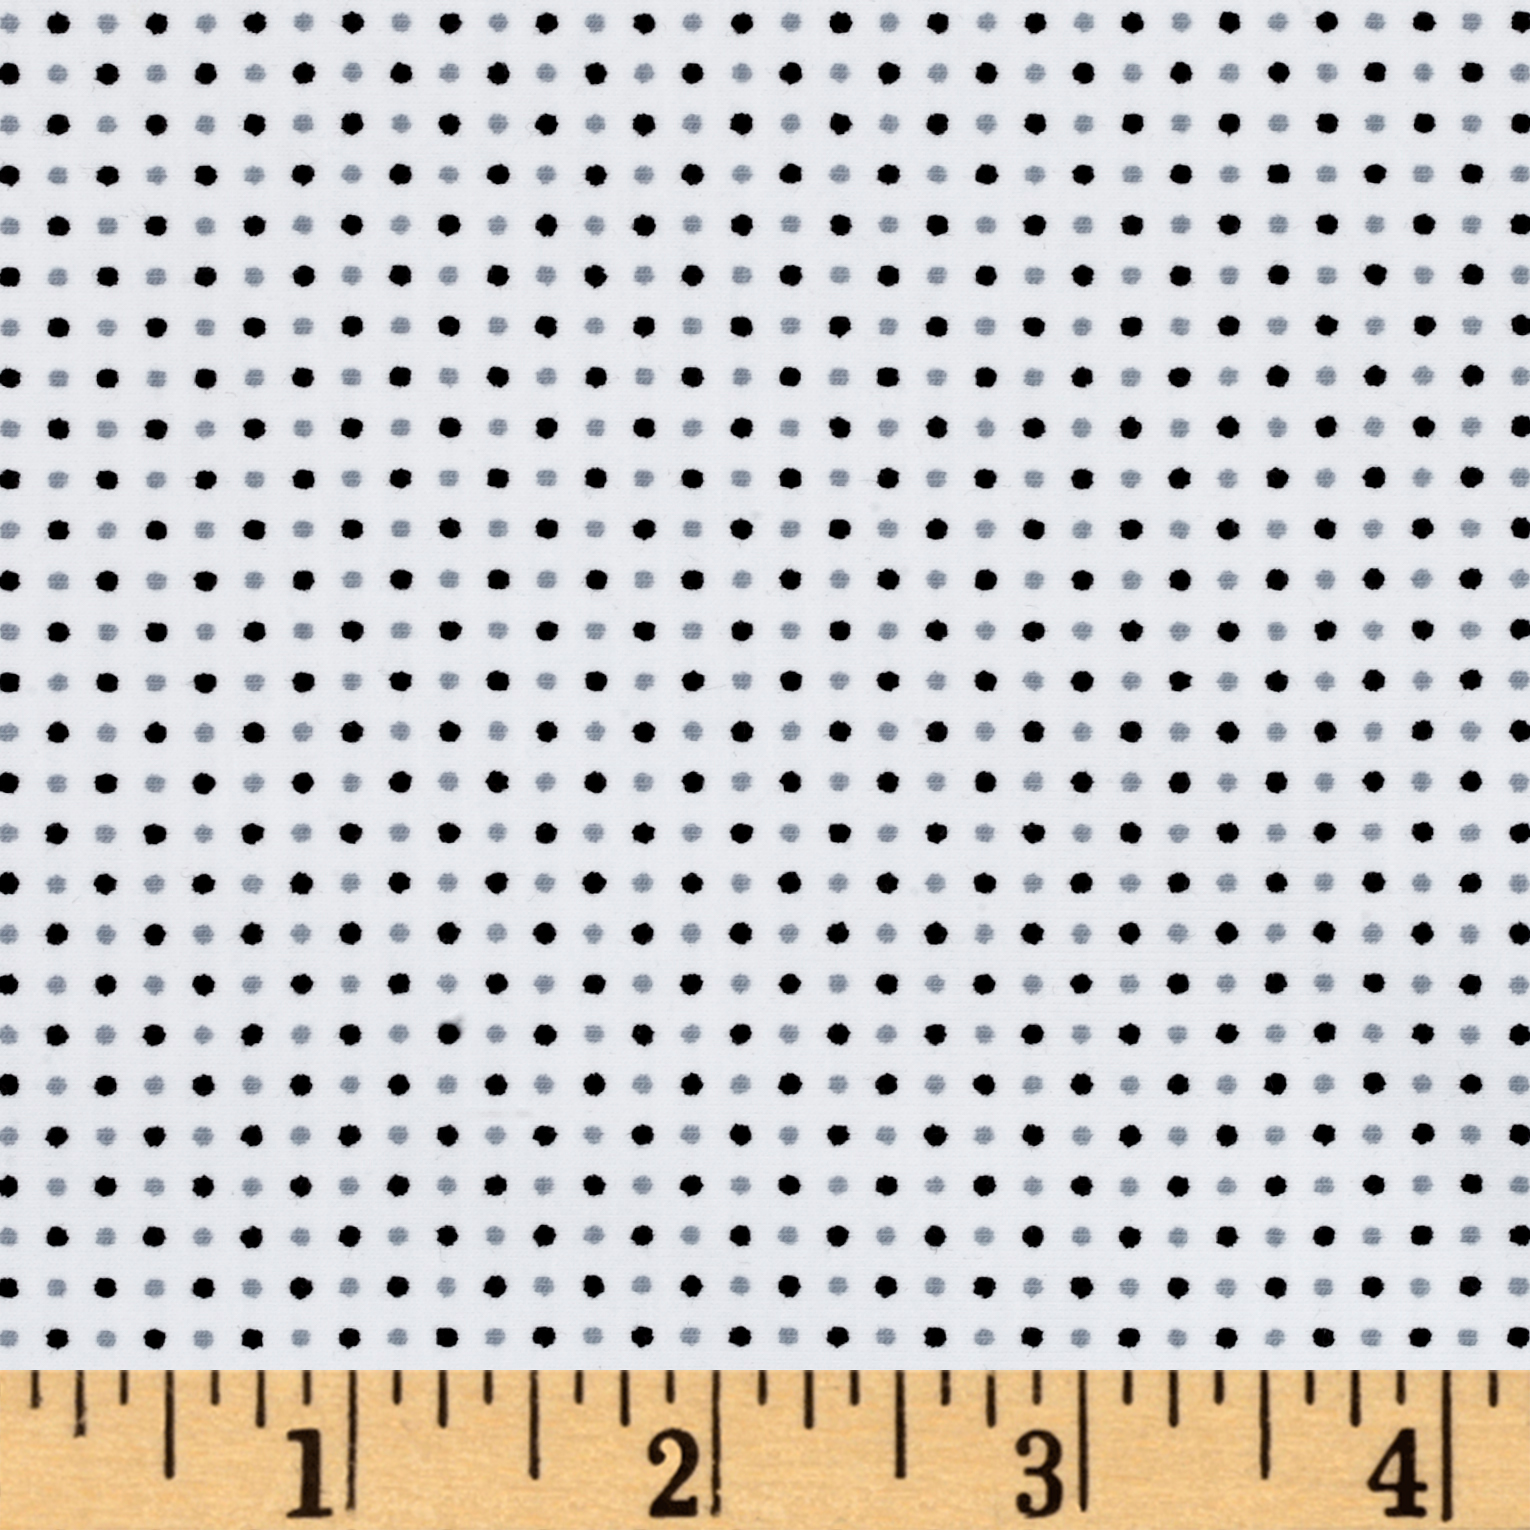 Avalana Jersey Knit Dots White Fabric Style 469584 by Stardom Specialty in USA